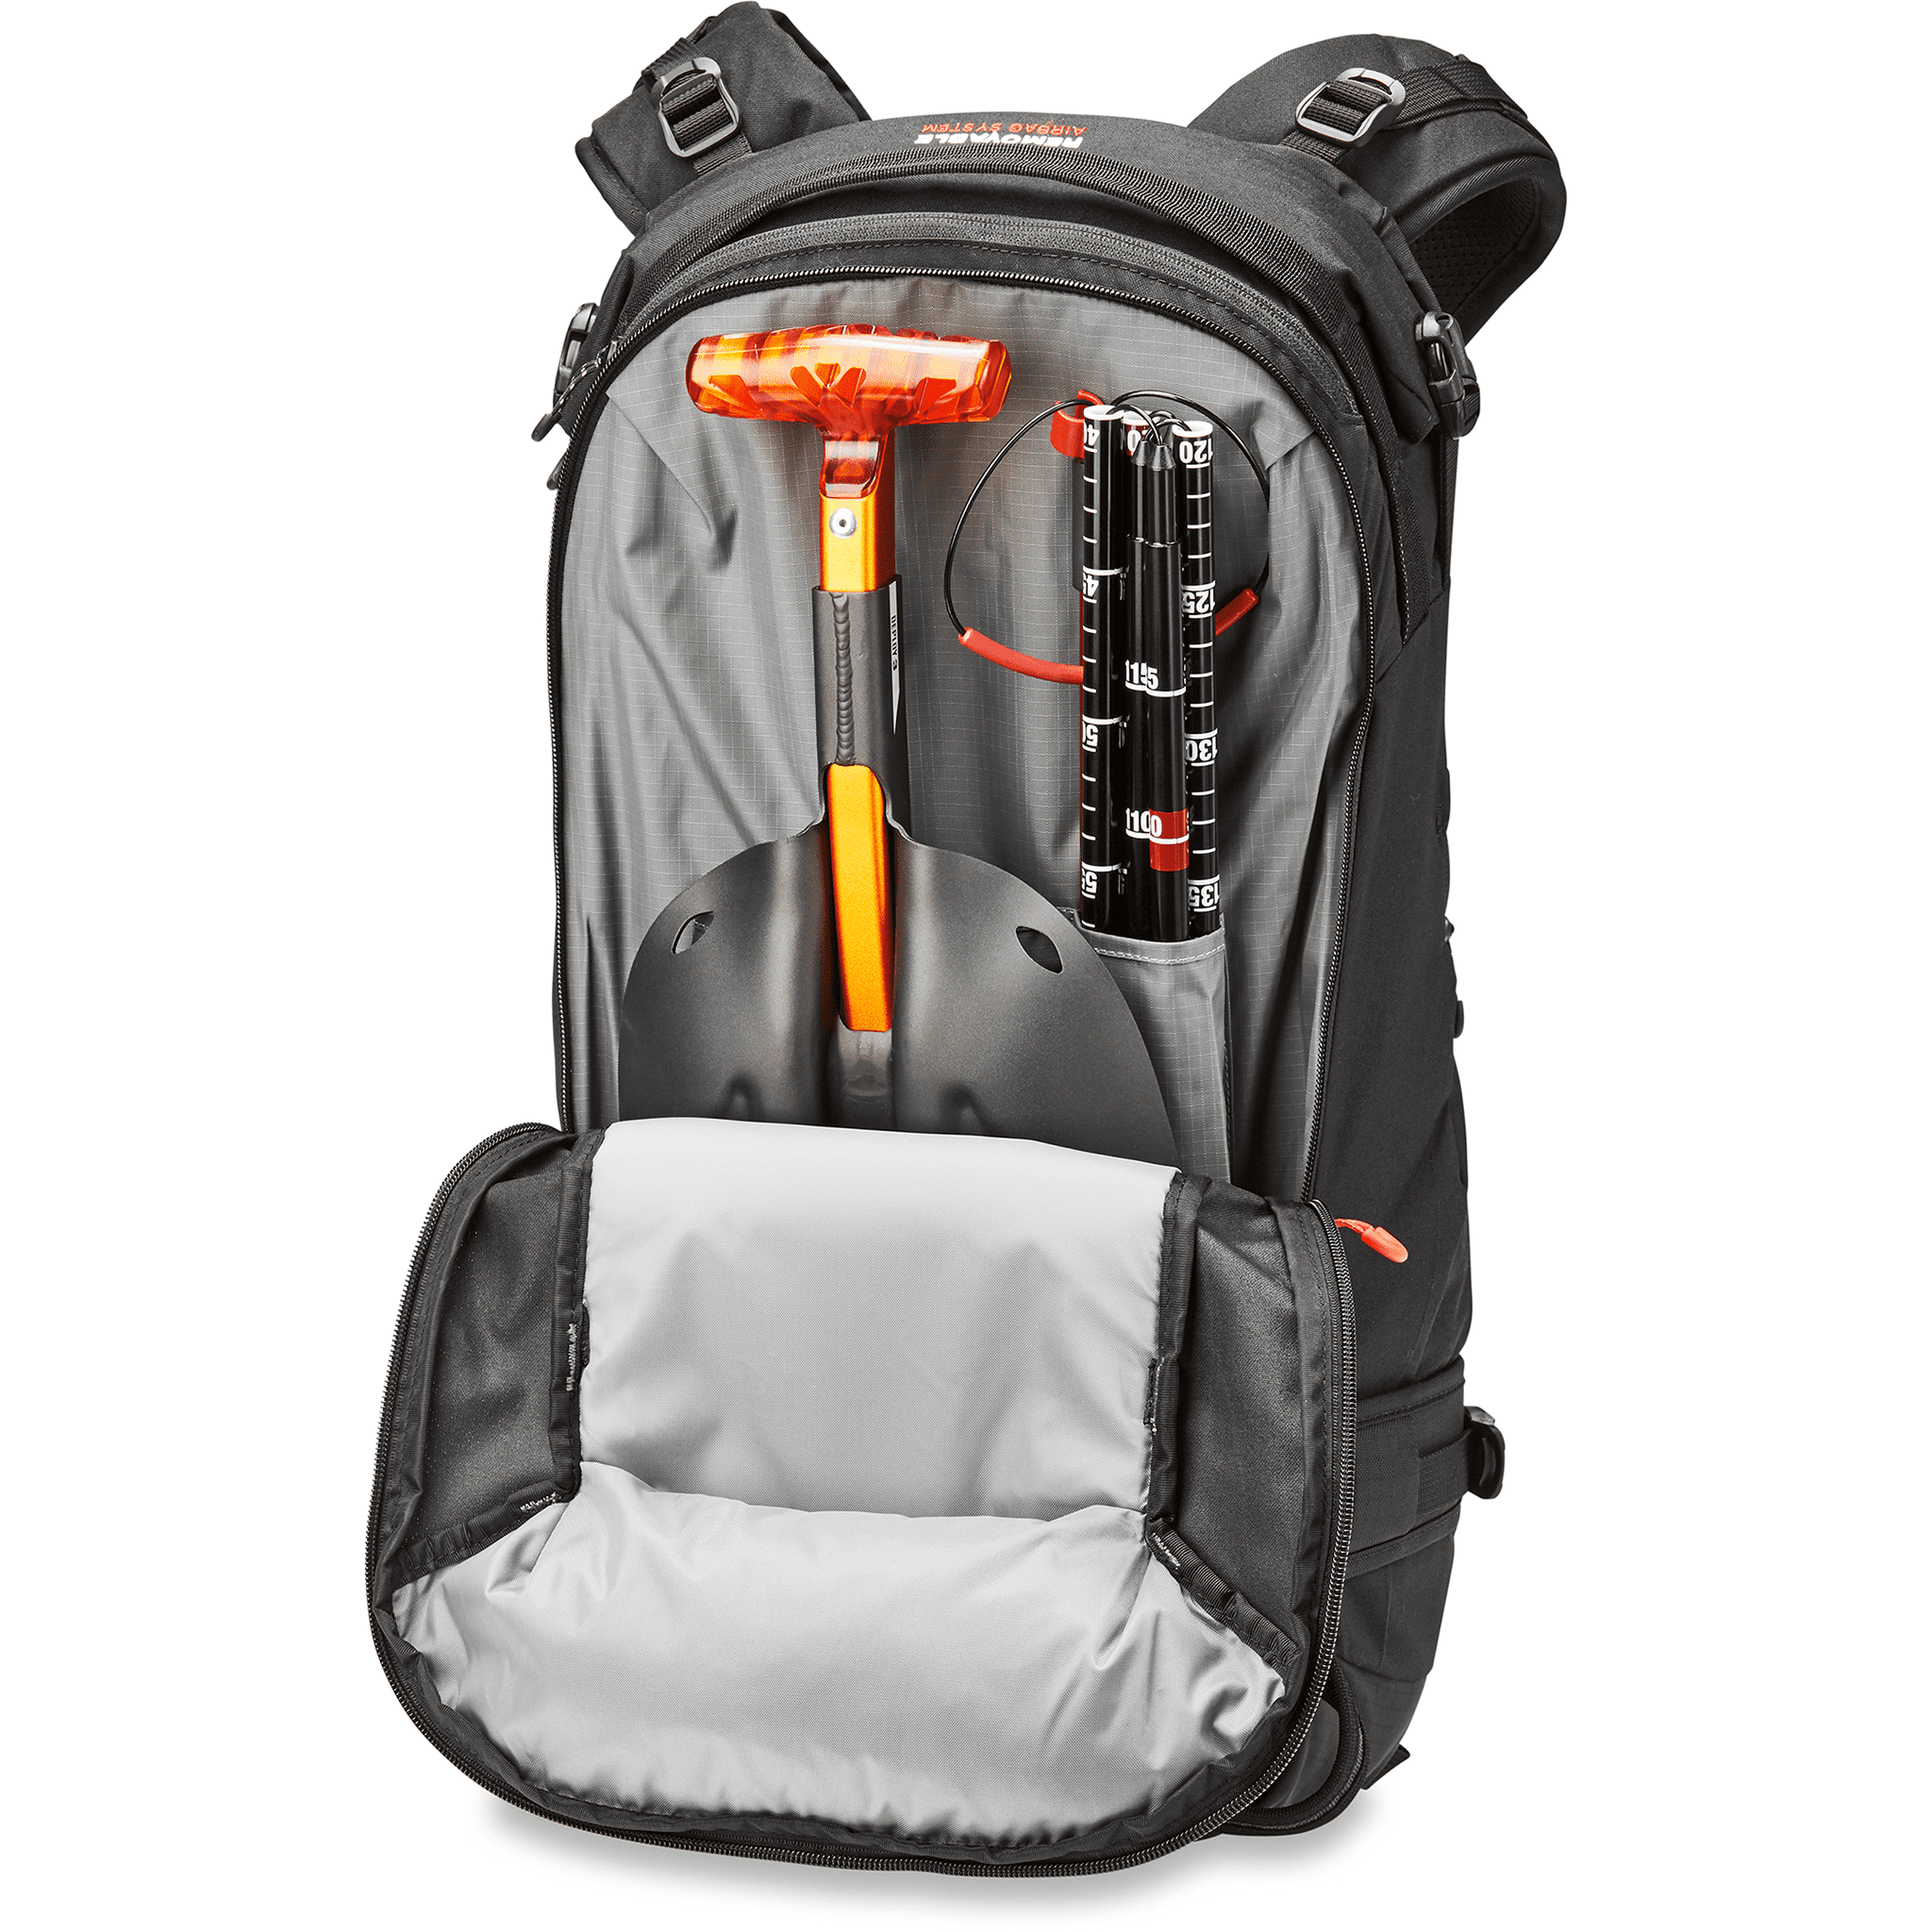 Dakine Poacher RAS 26L Airbag Backpack Kit - Chris Benchetler